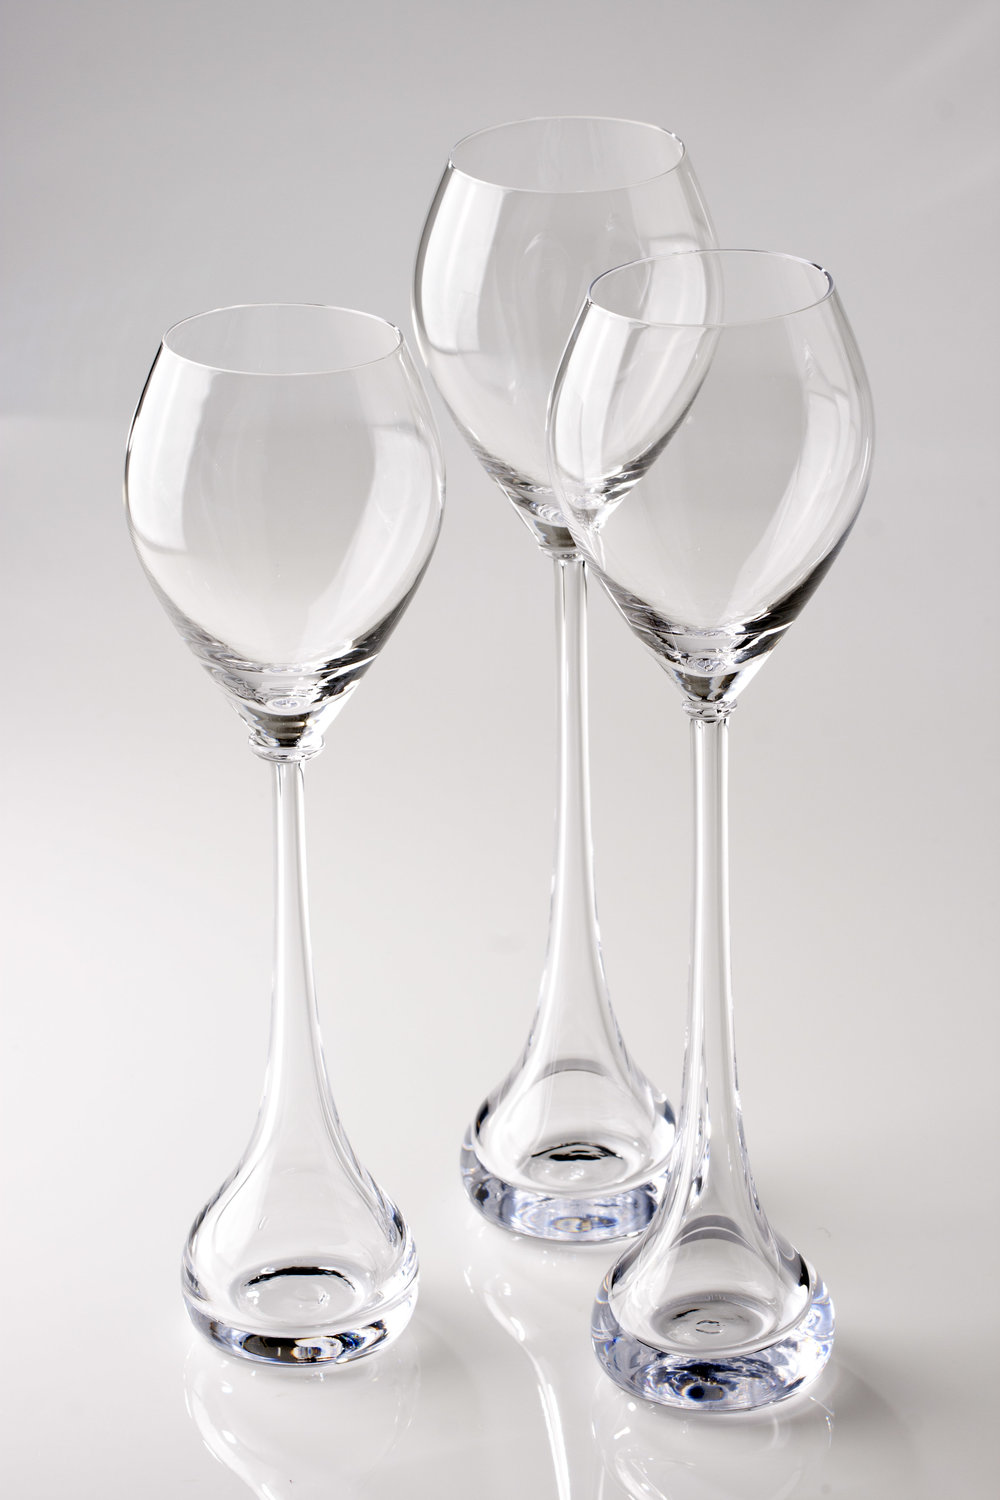 Gaia champagne glass // design Helmi Remes and Maria Jutila